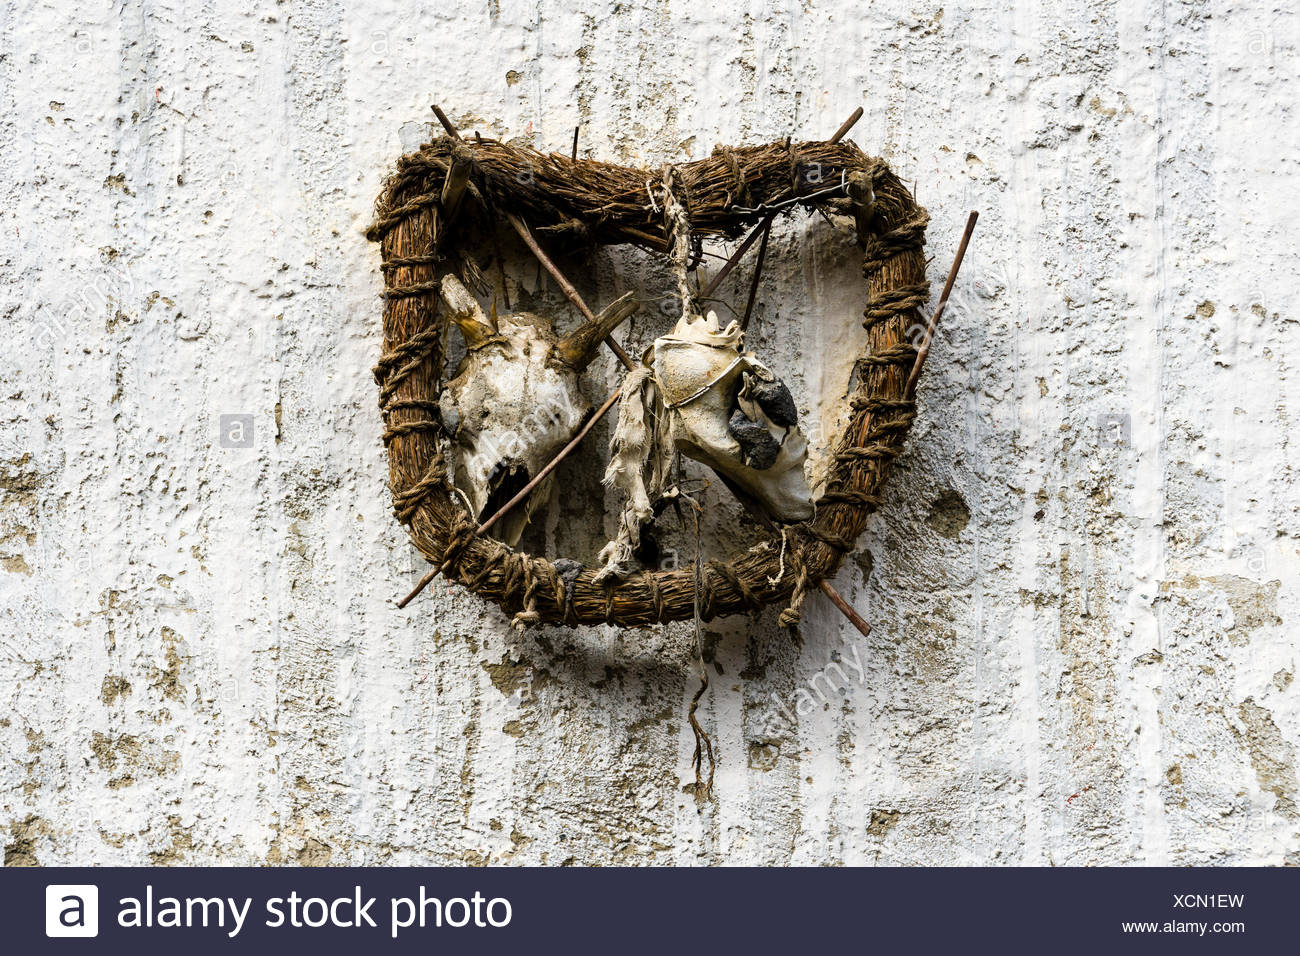 Ghost trap protecting house, Bön religion, Purang, Mustang District, Nepal - Stock Image